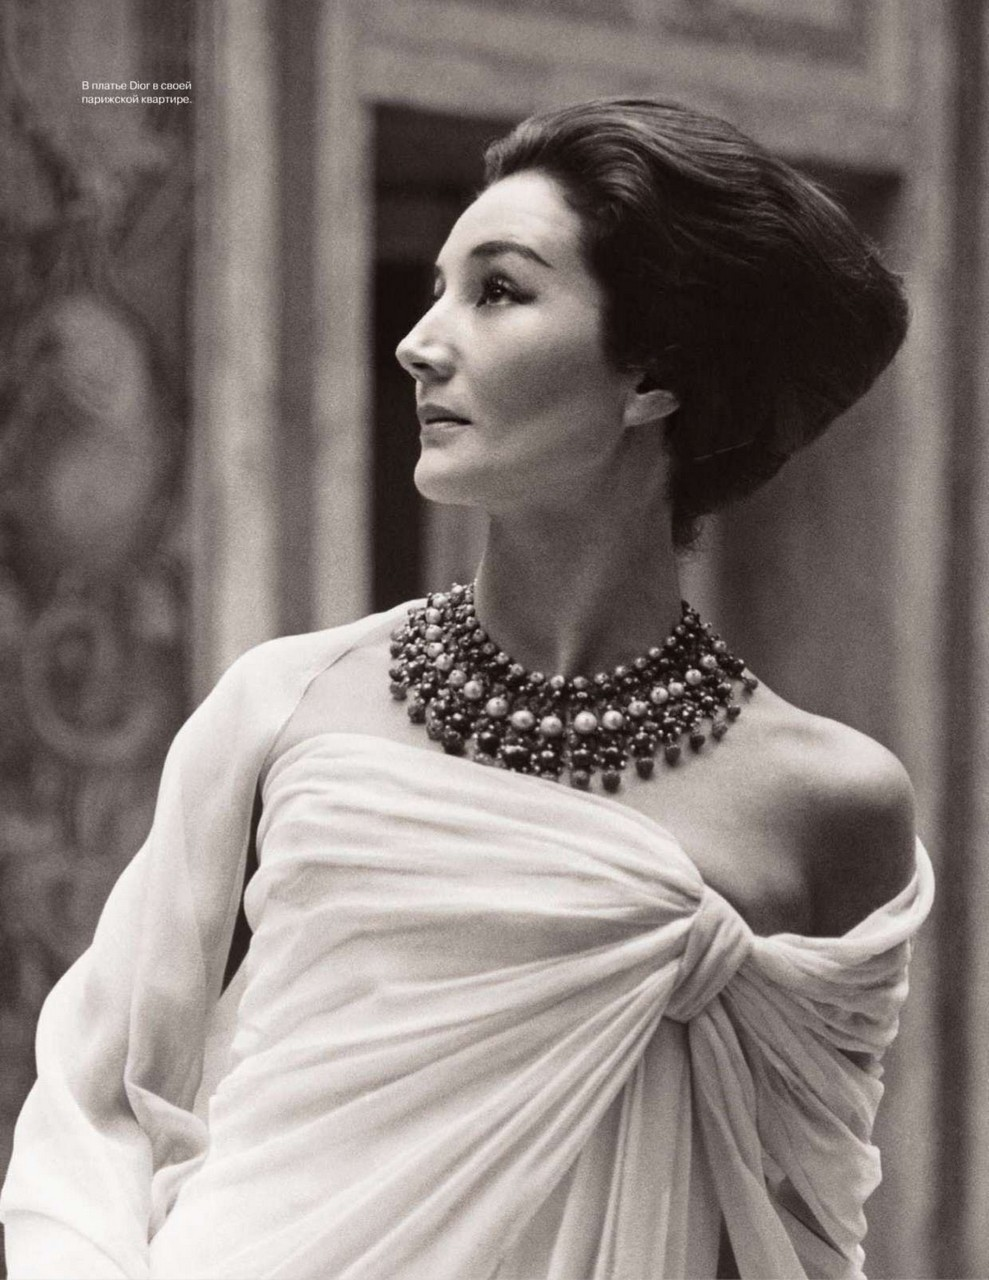 A Reflection of Classical Elegance, Jacqueline de Ribes